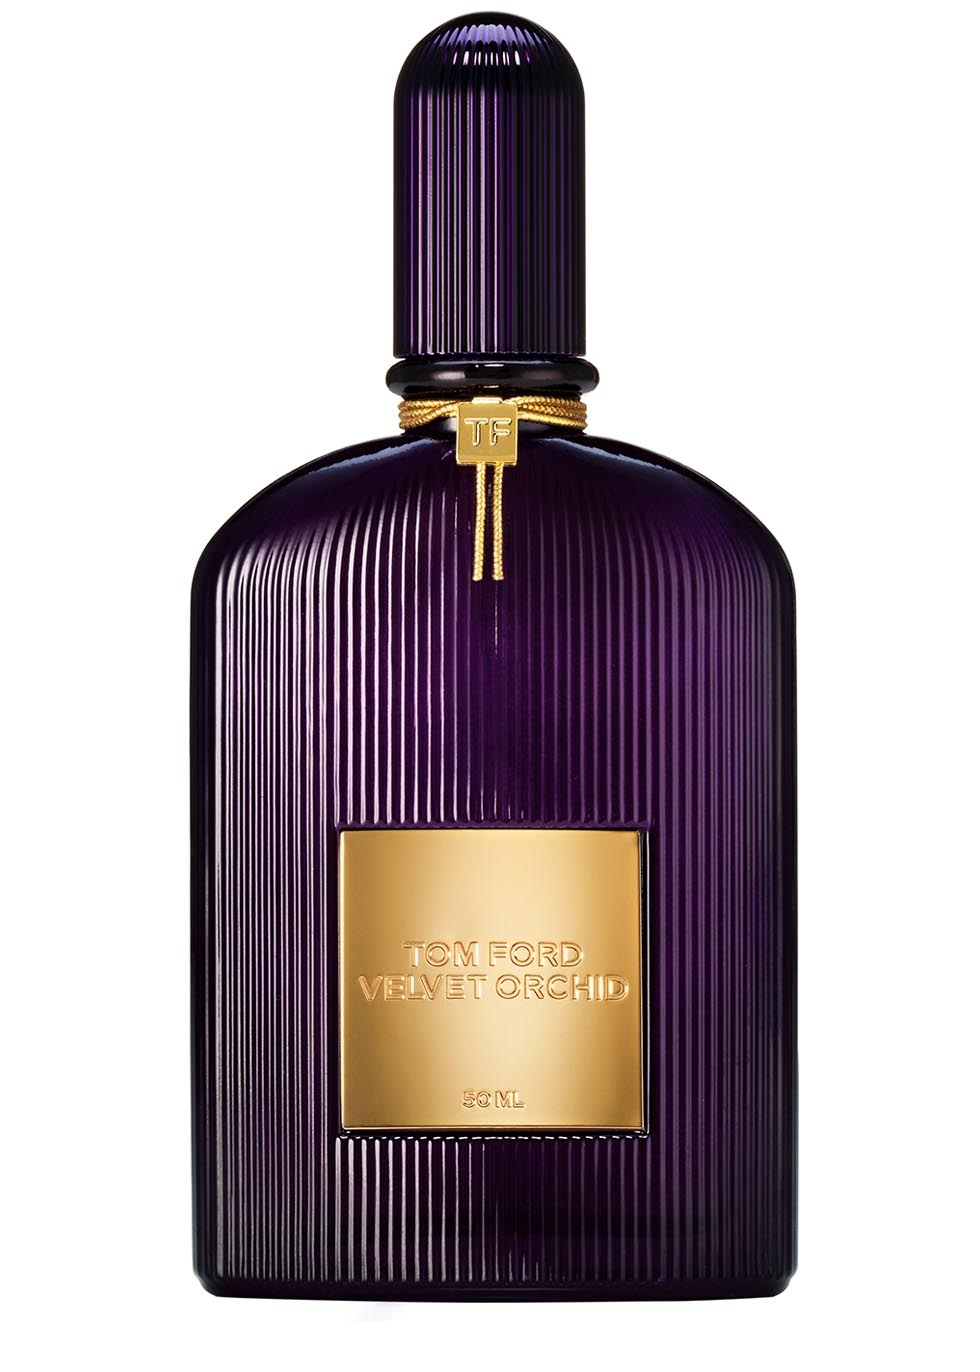 Tom Ford Velvet Orchid EDP, £72 (50ml)